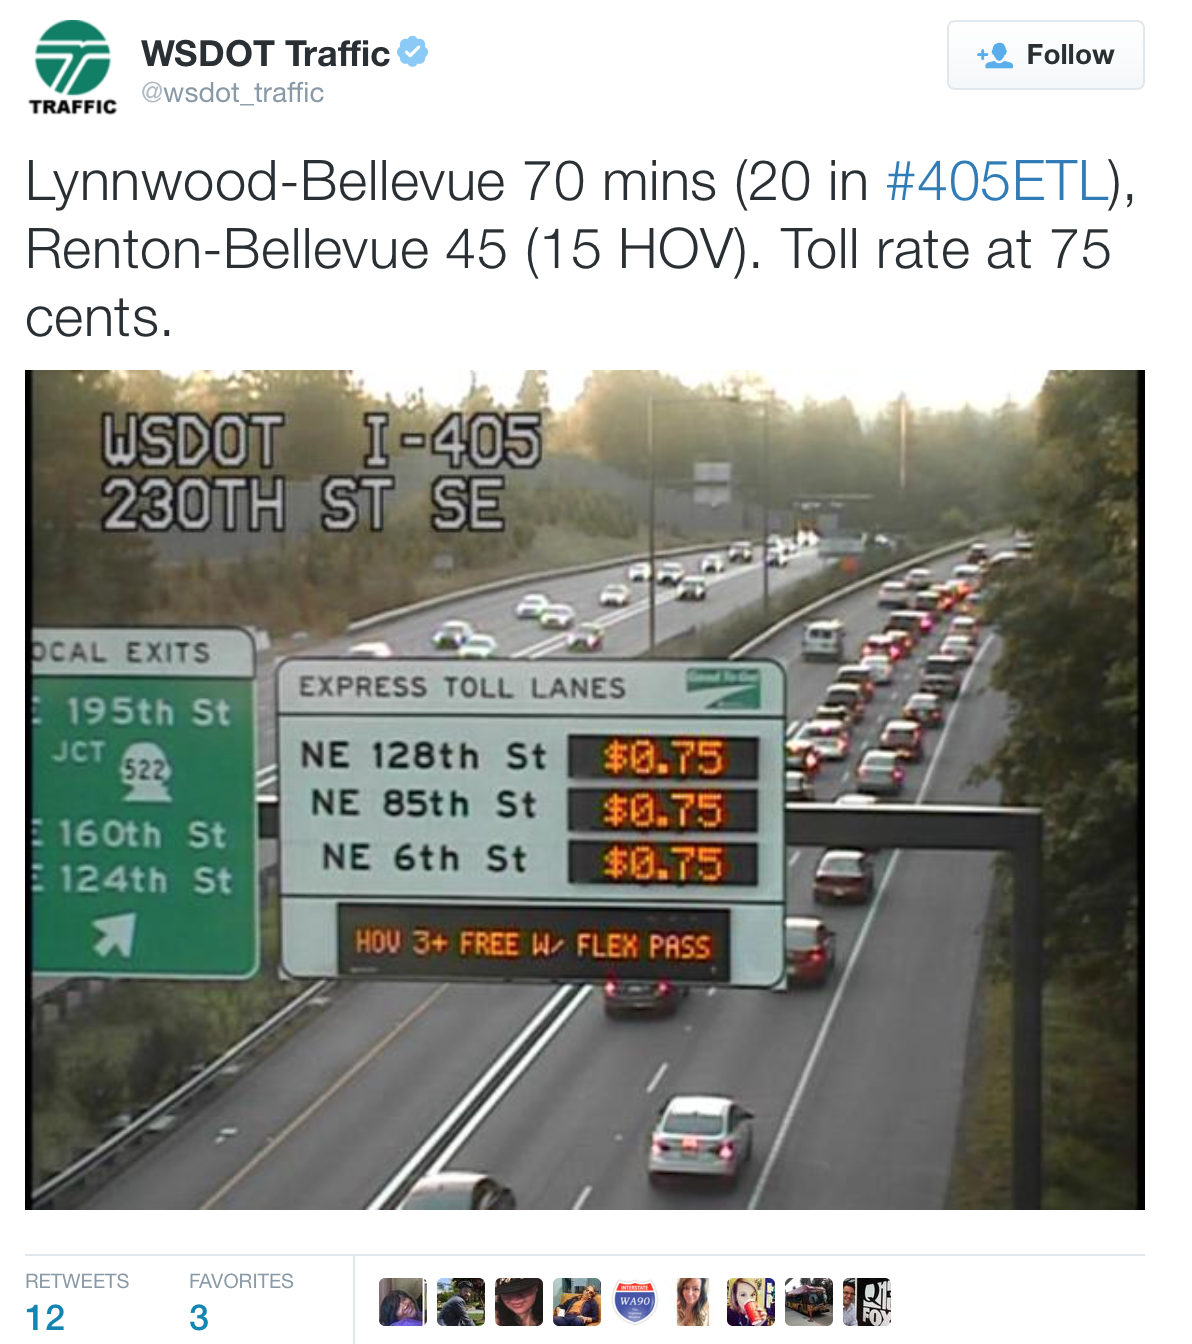 I-405 Express Toll Lanes Open – Seattle Transit Blog on los angeles hov lanes map, 57 freeway map, lake titicaca map,